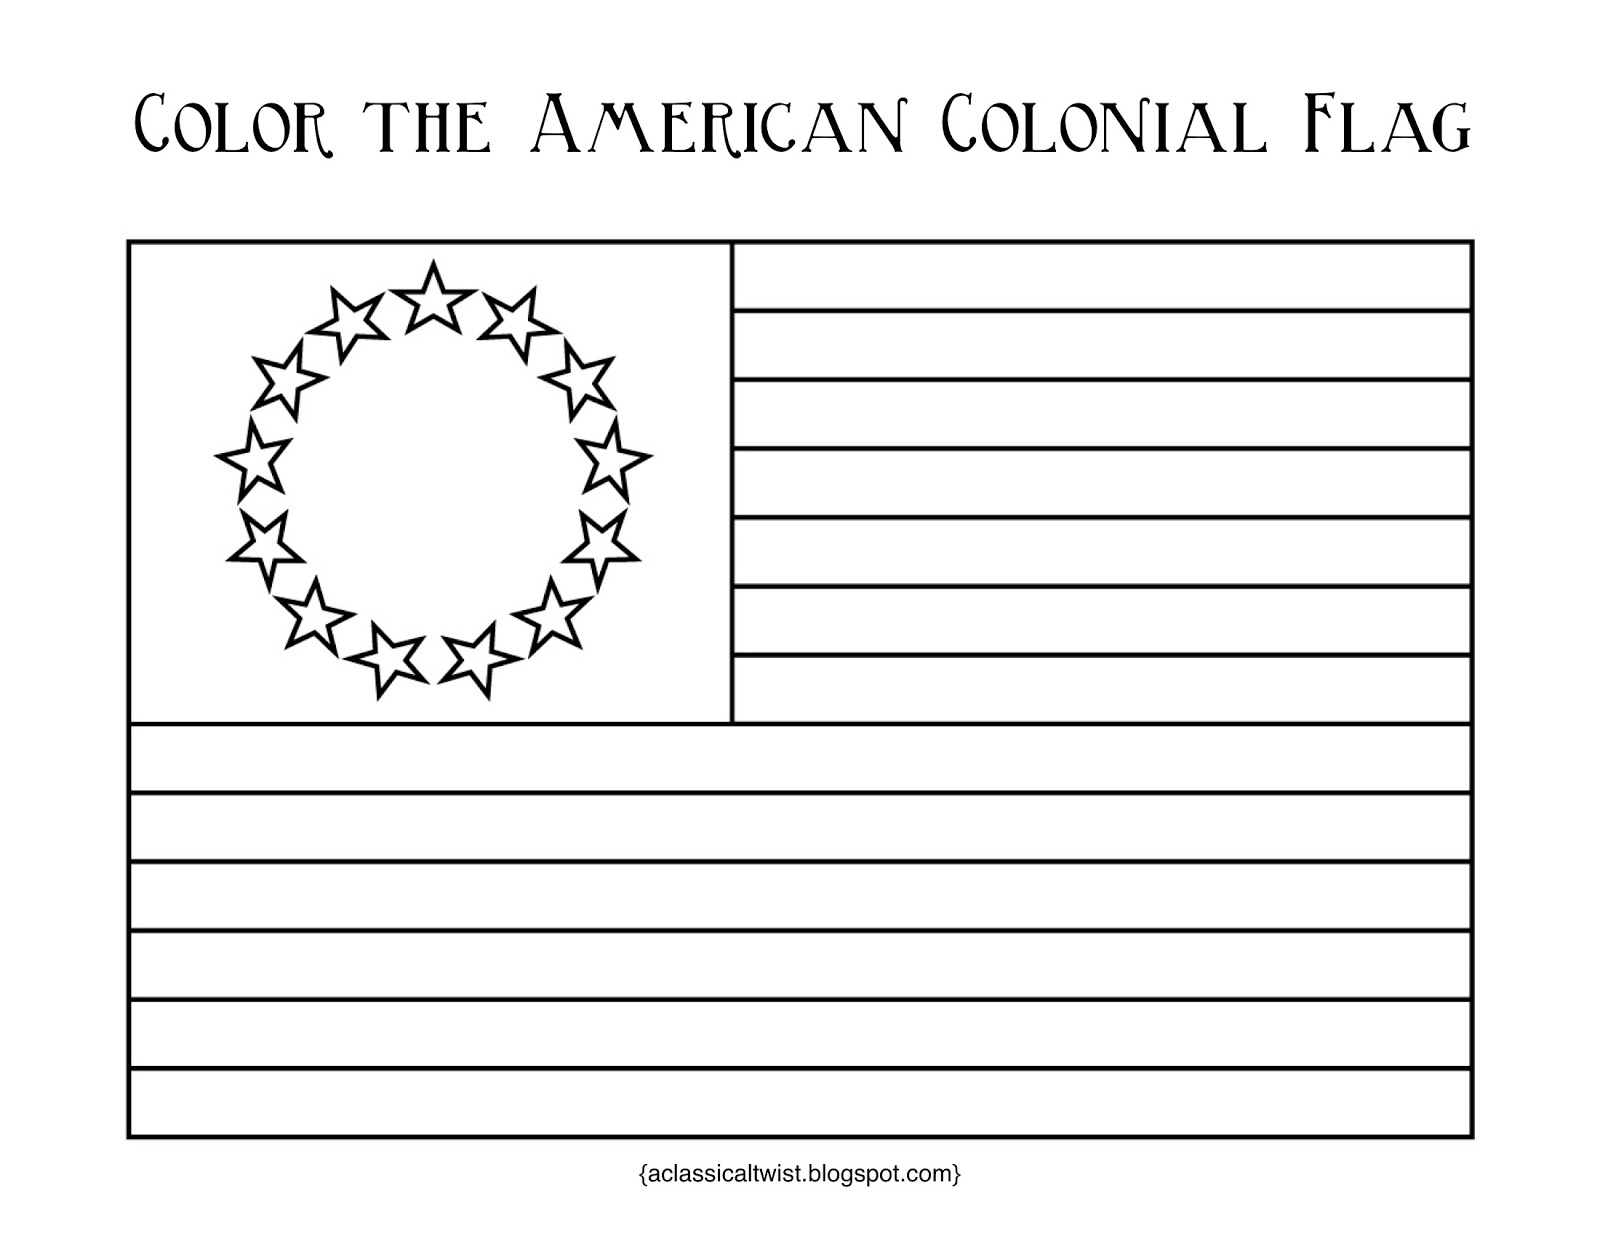 homeschooling with a classical twist original 13 colonies and usa flag coloring pages